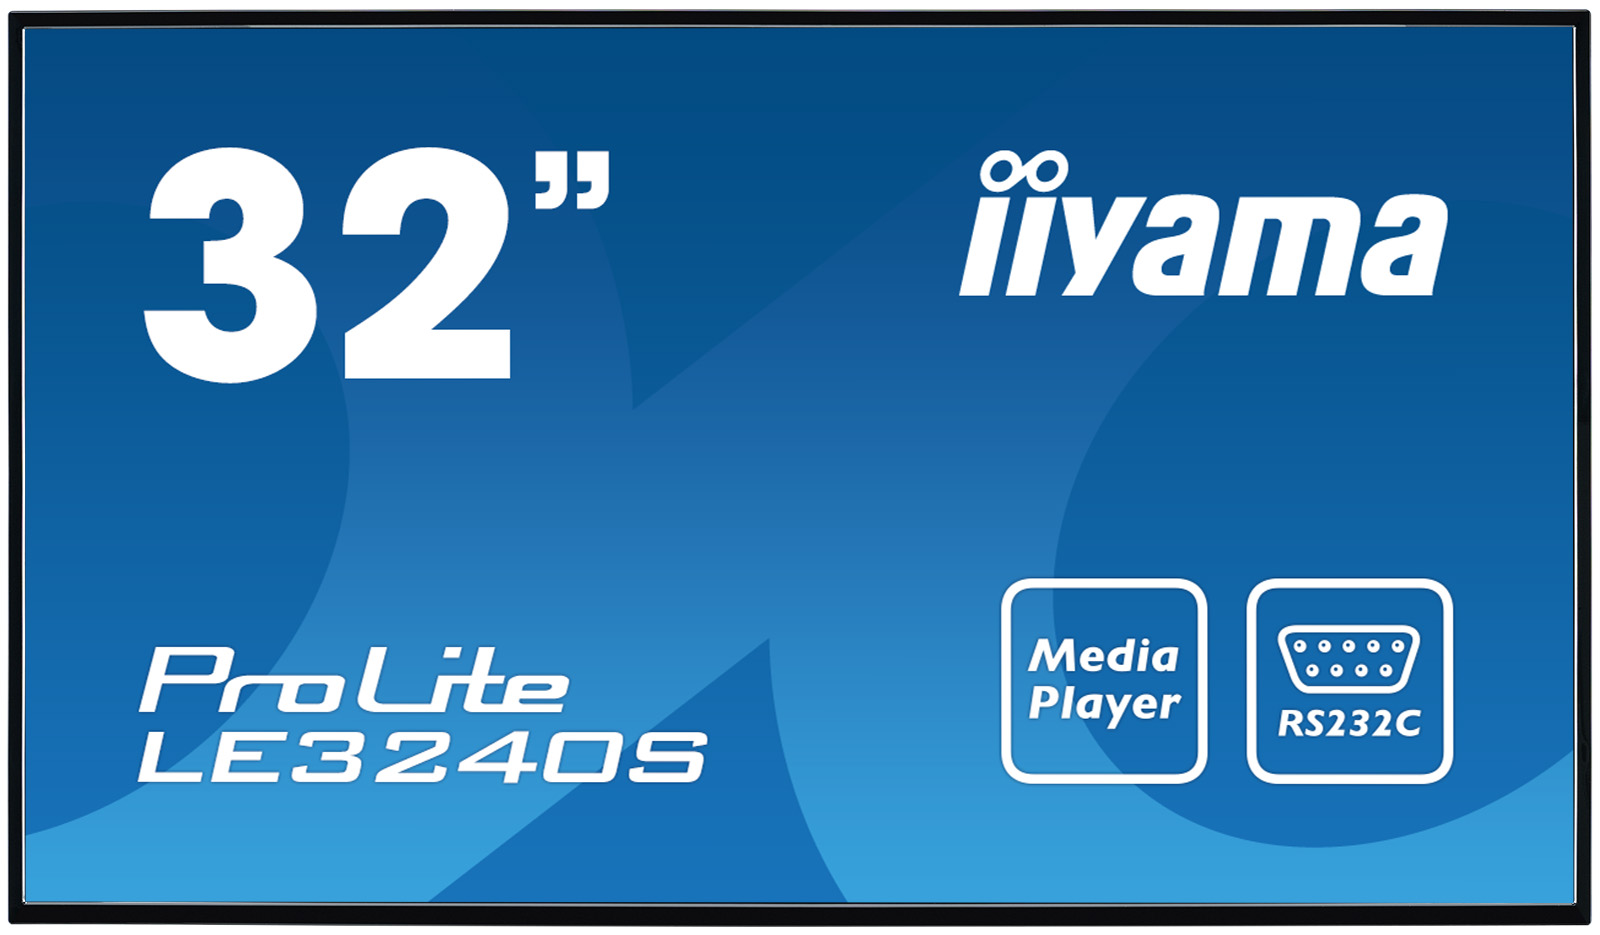 "32"" LCD iiyama ProLite LE3240S-B1 -FullHD, IPS, 8ms, 350cd, USB 2.0 media player, RJ45, RS232C,repro"